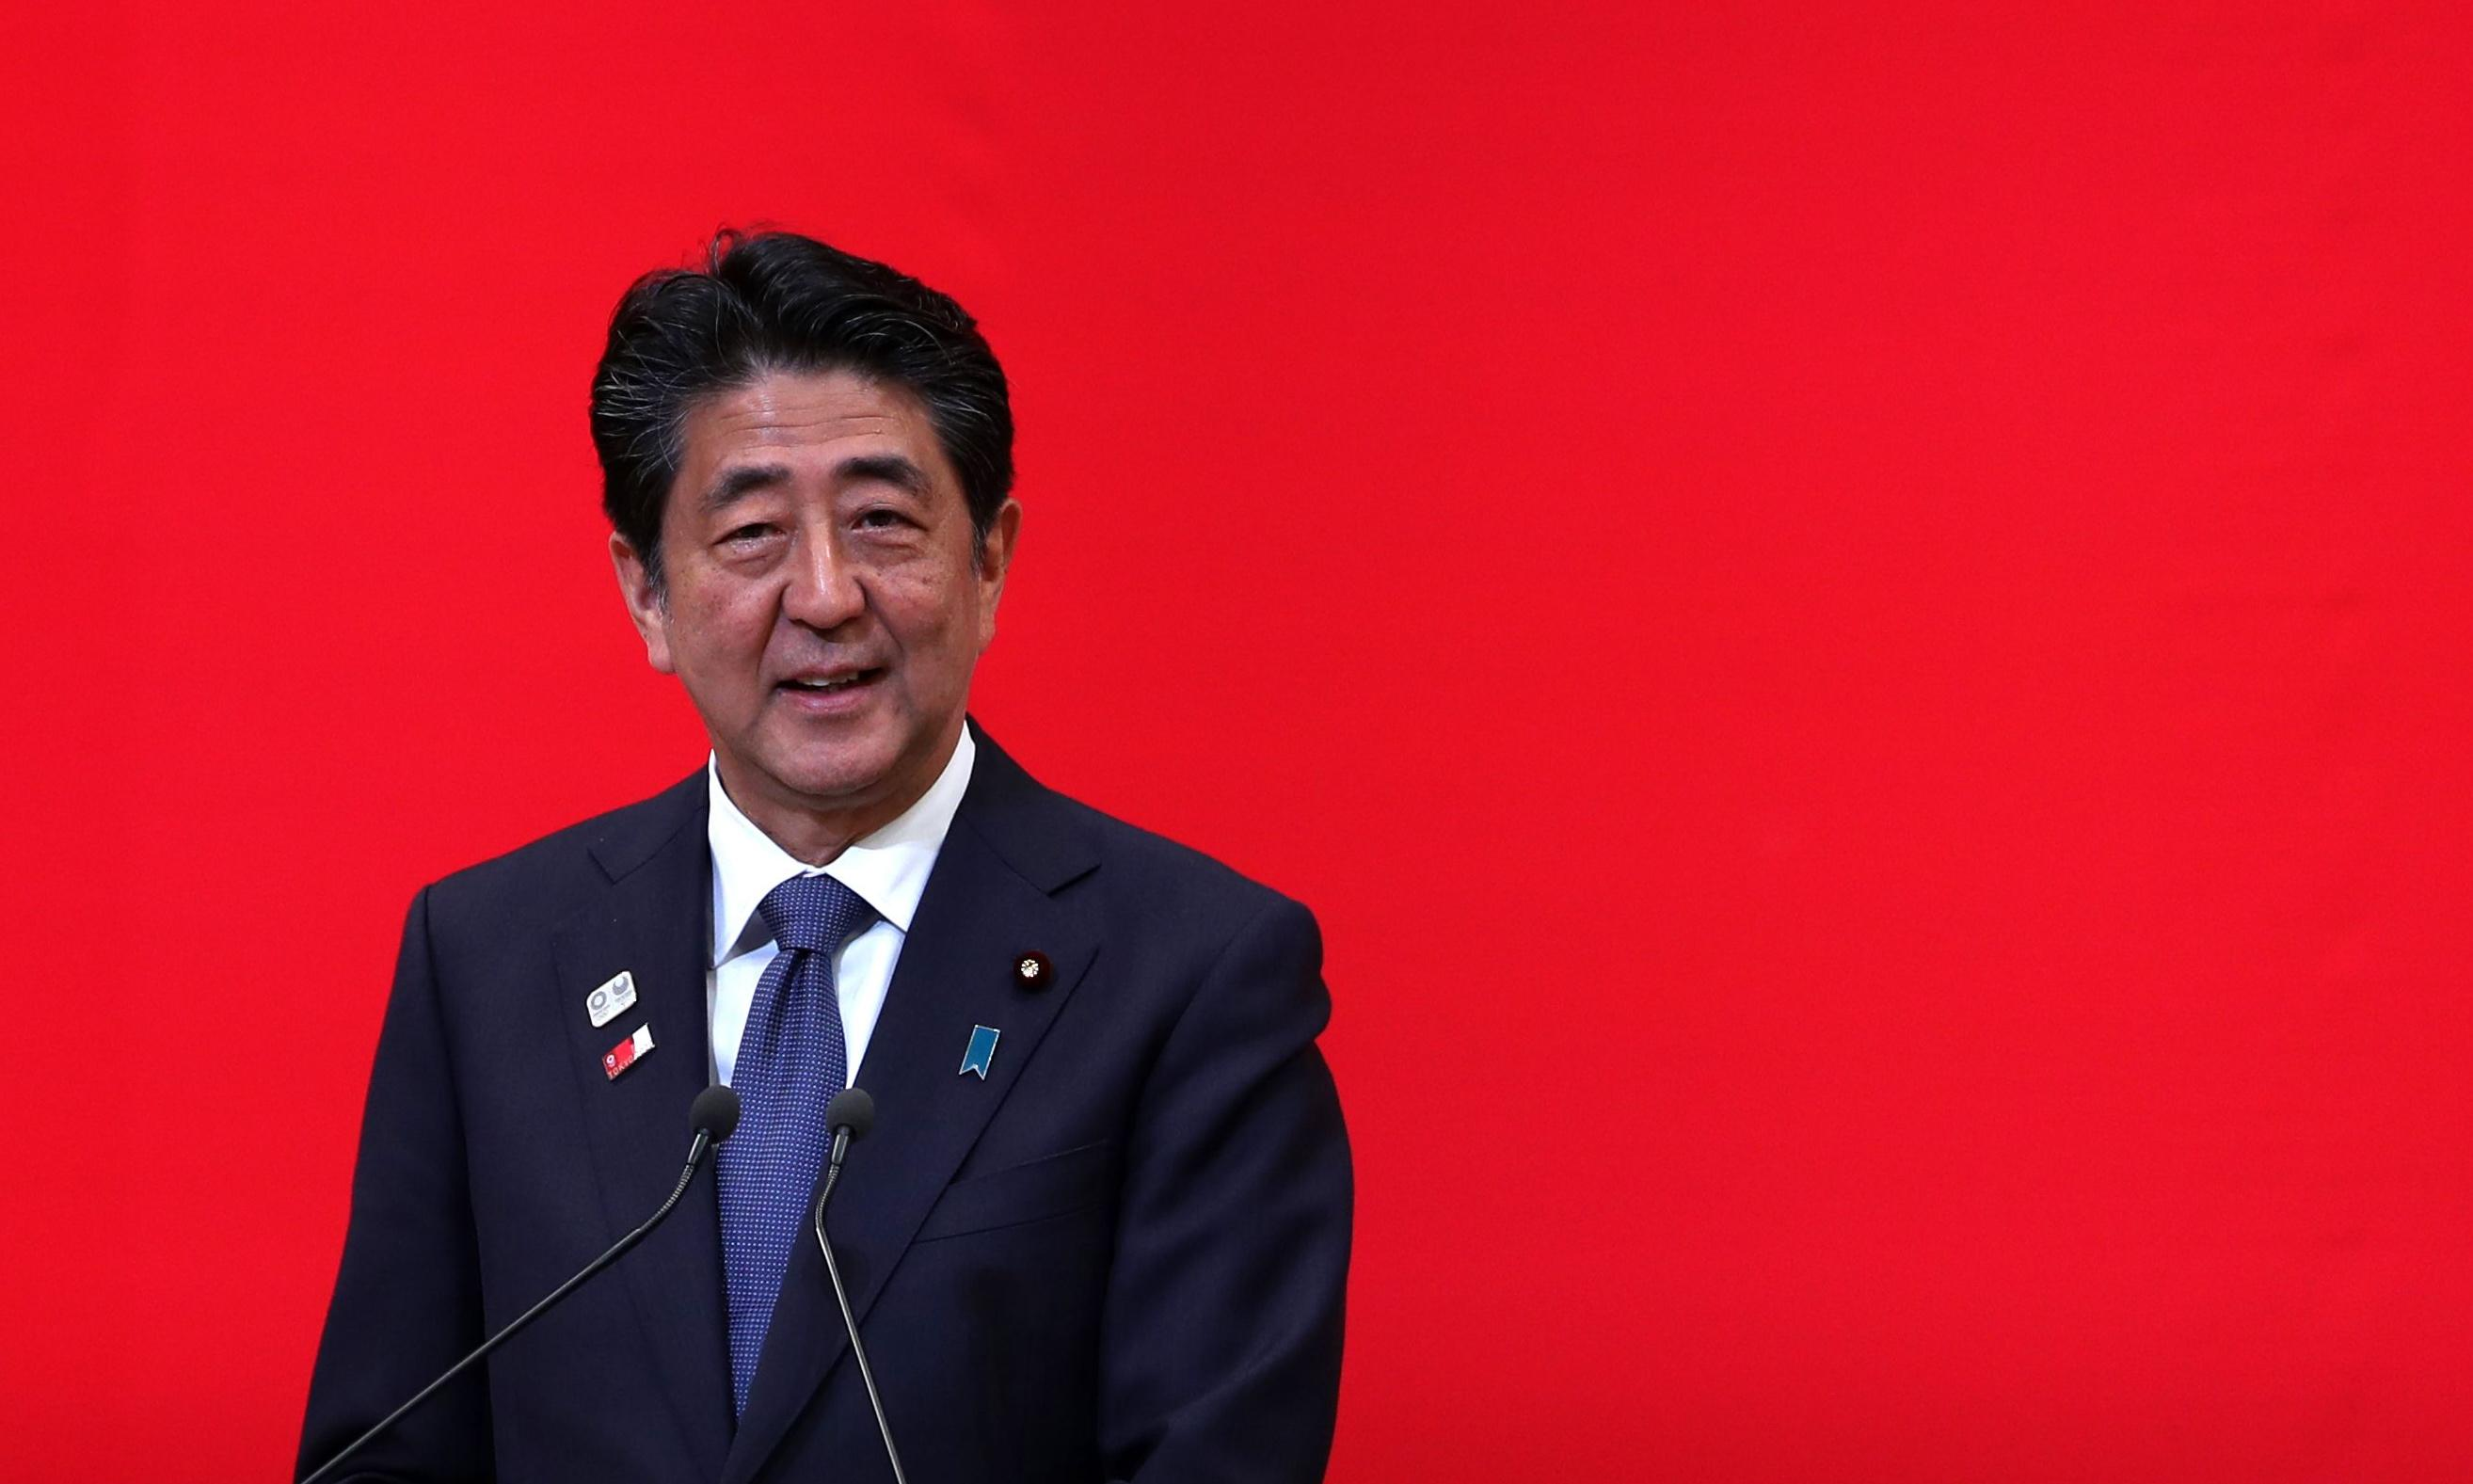 Shinzo Abe weathers scandals to become Japan's longest-serving prime minister